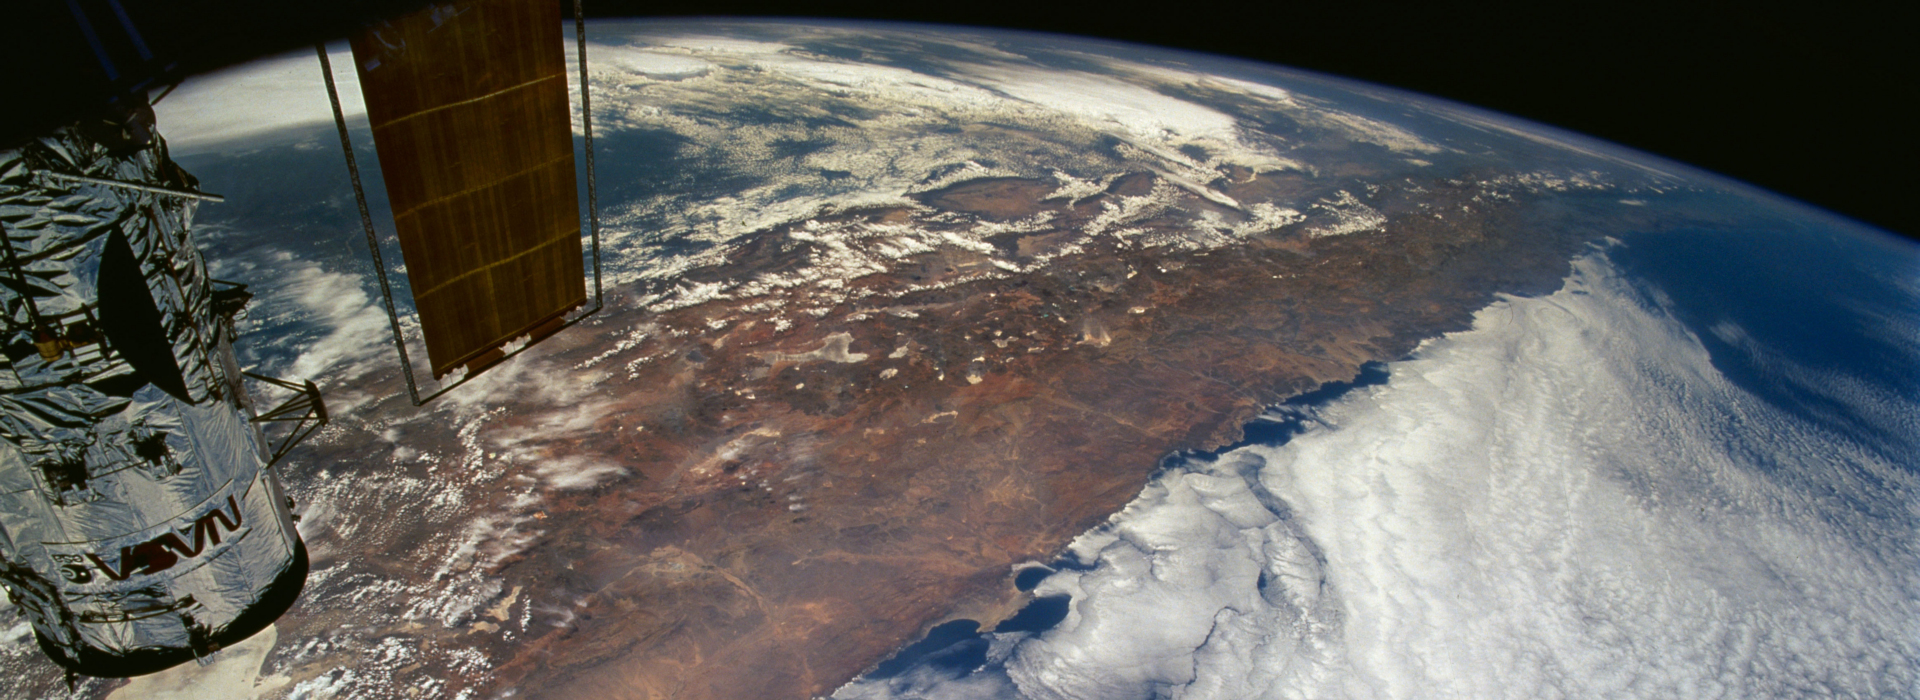 Northern Chile and Andes Mountains seen from STS-61 Shuttle Endeavour